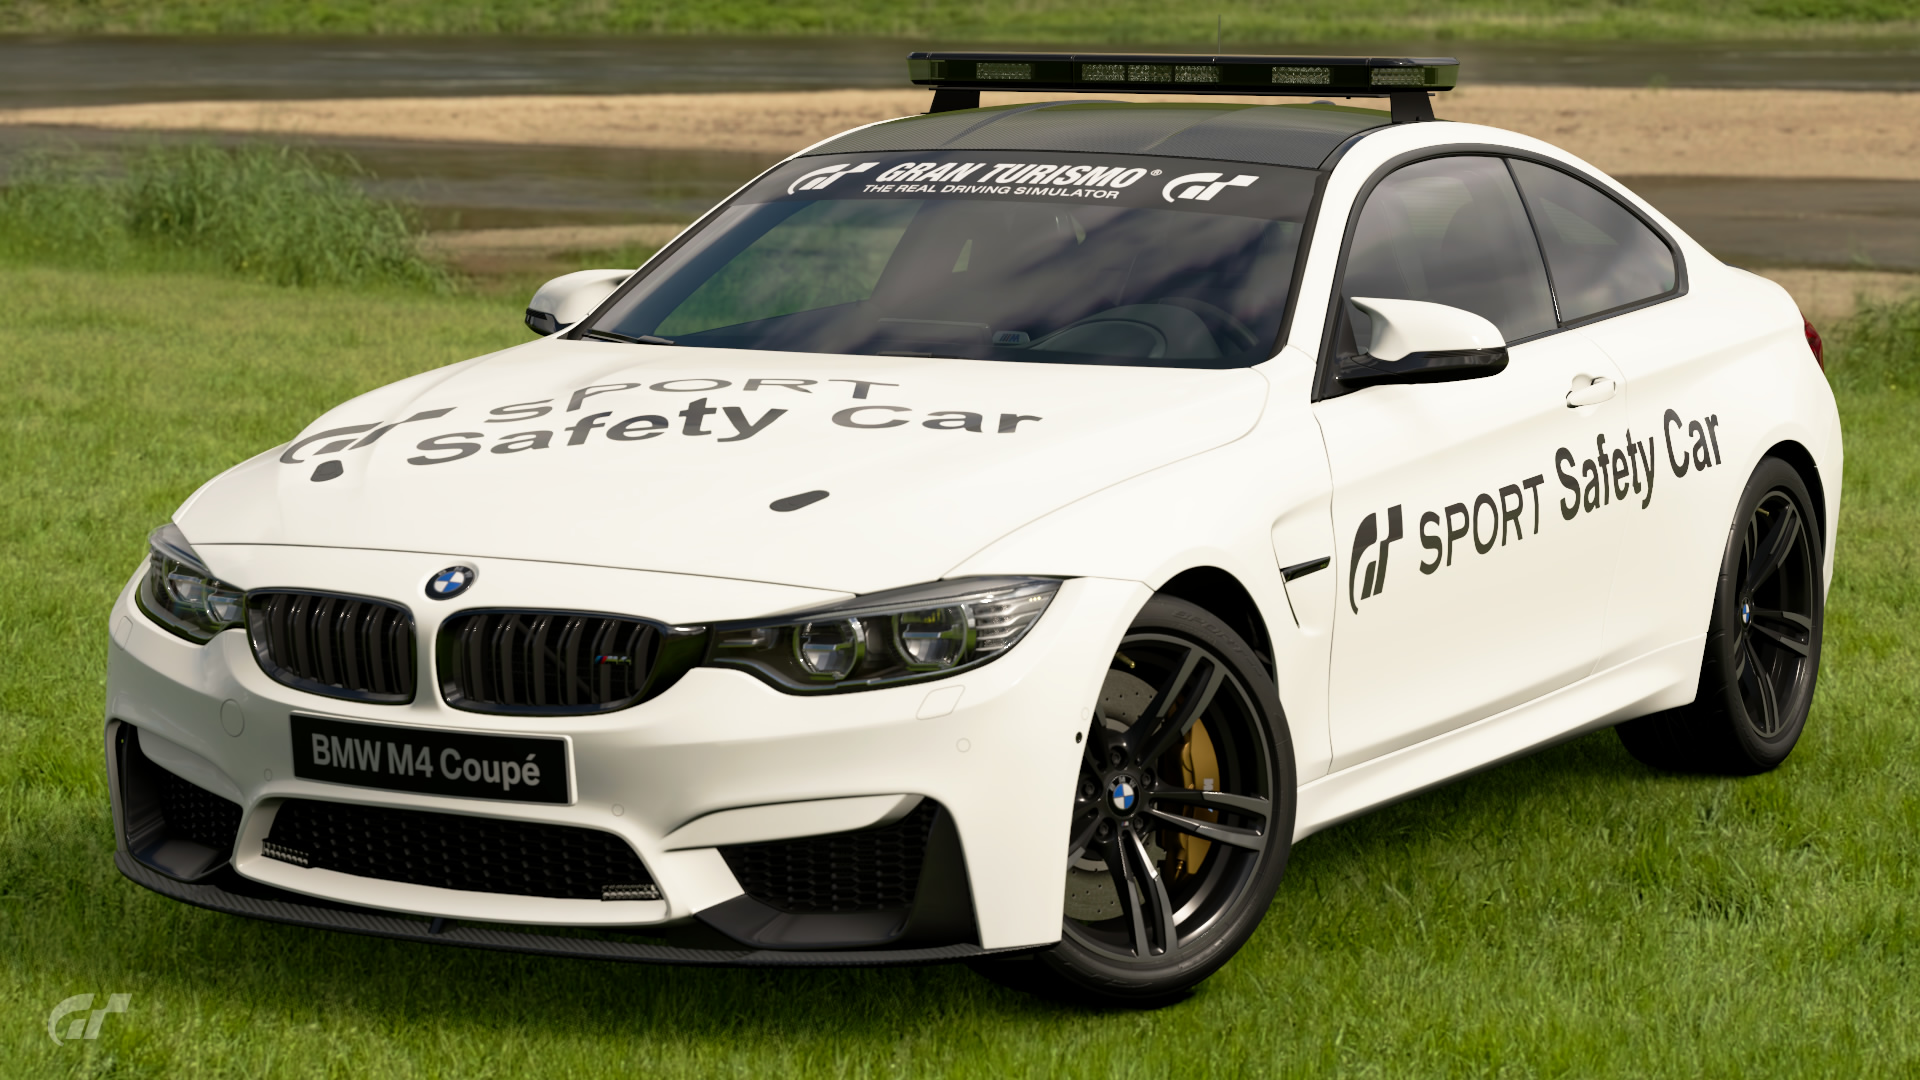 BMW M4 Safety Car | Gran Turismo Wiki | FANDOM powered by Wikia